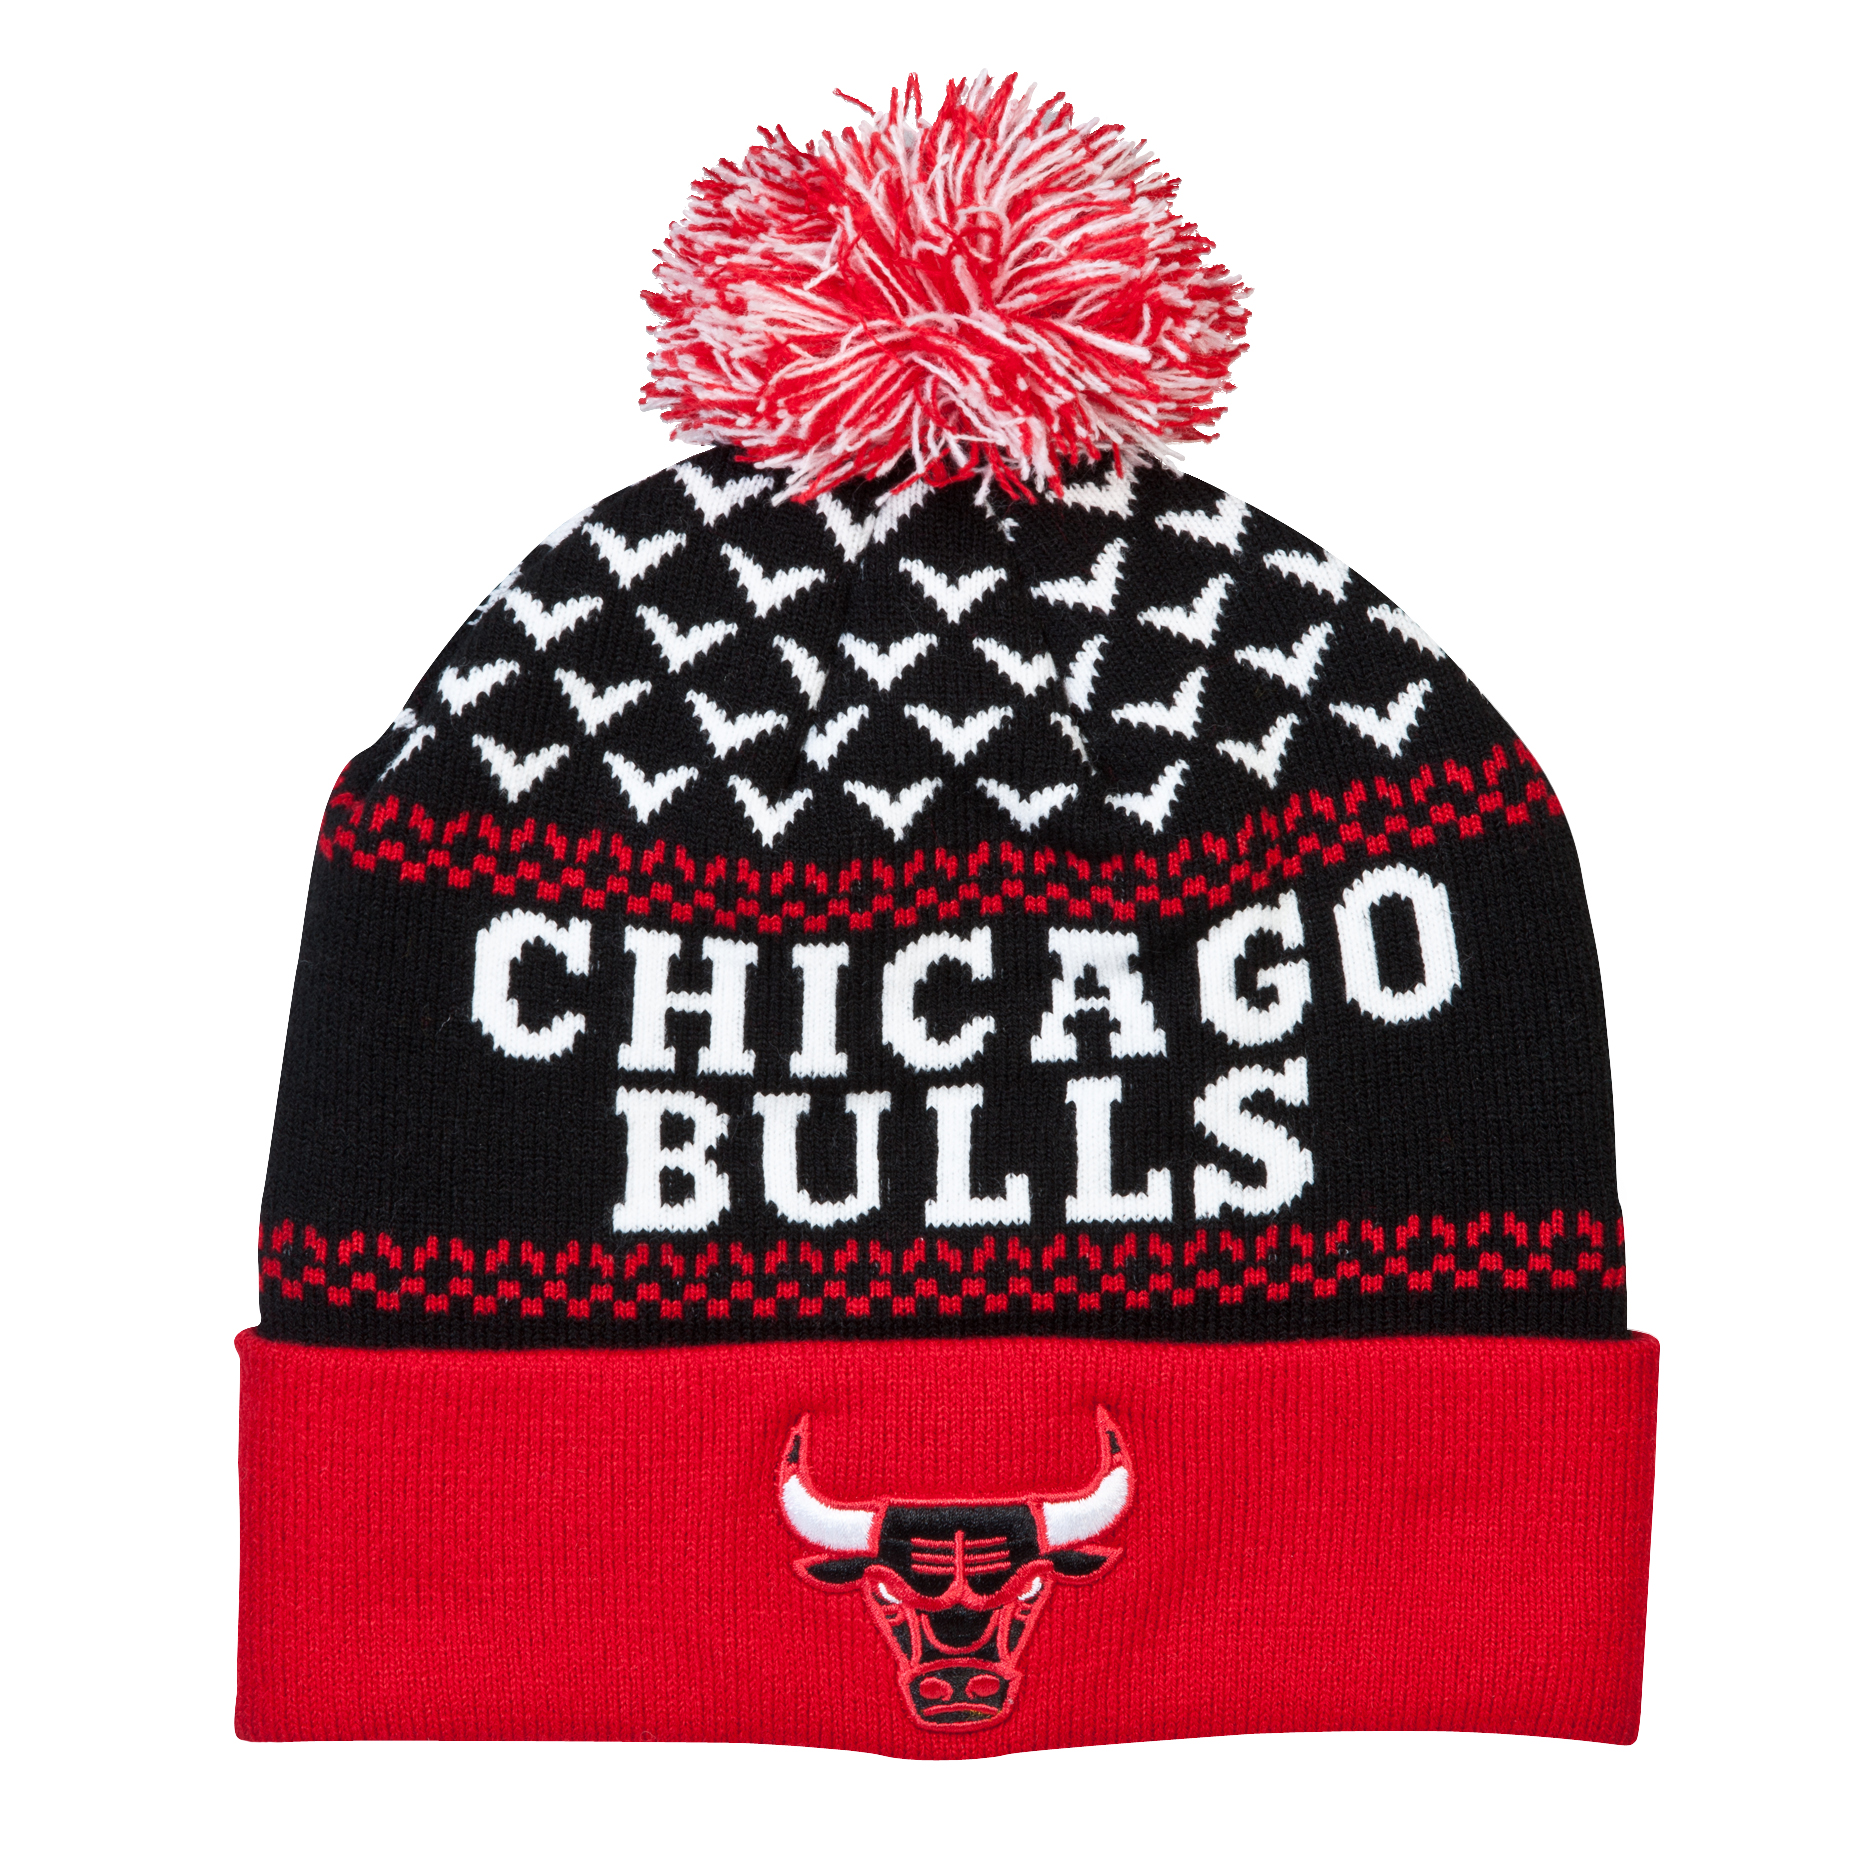 Chicago Bulls Nujacq Cuff Knit Bobble Hat Black